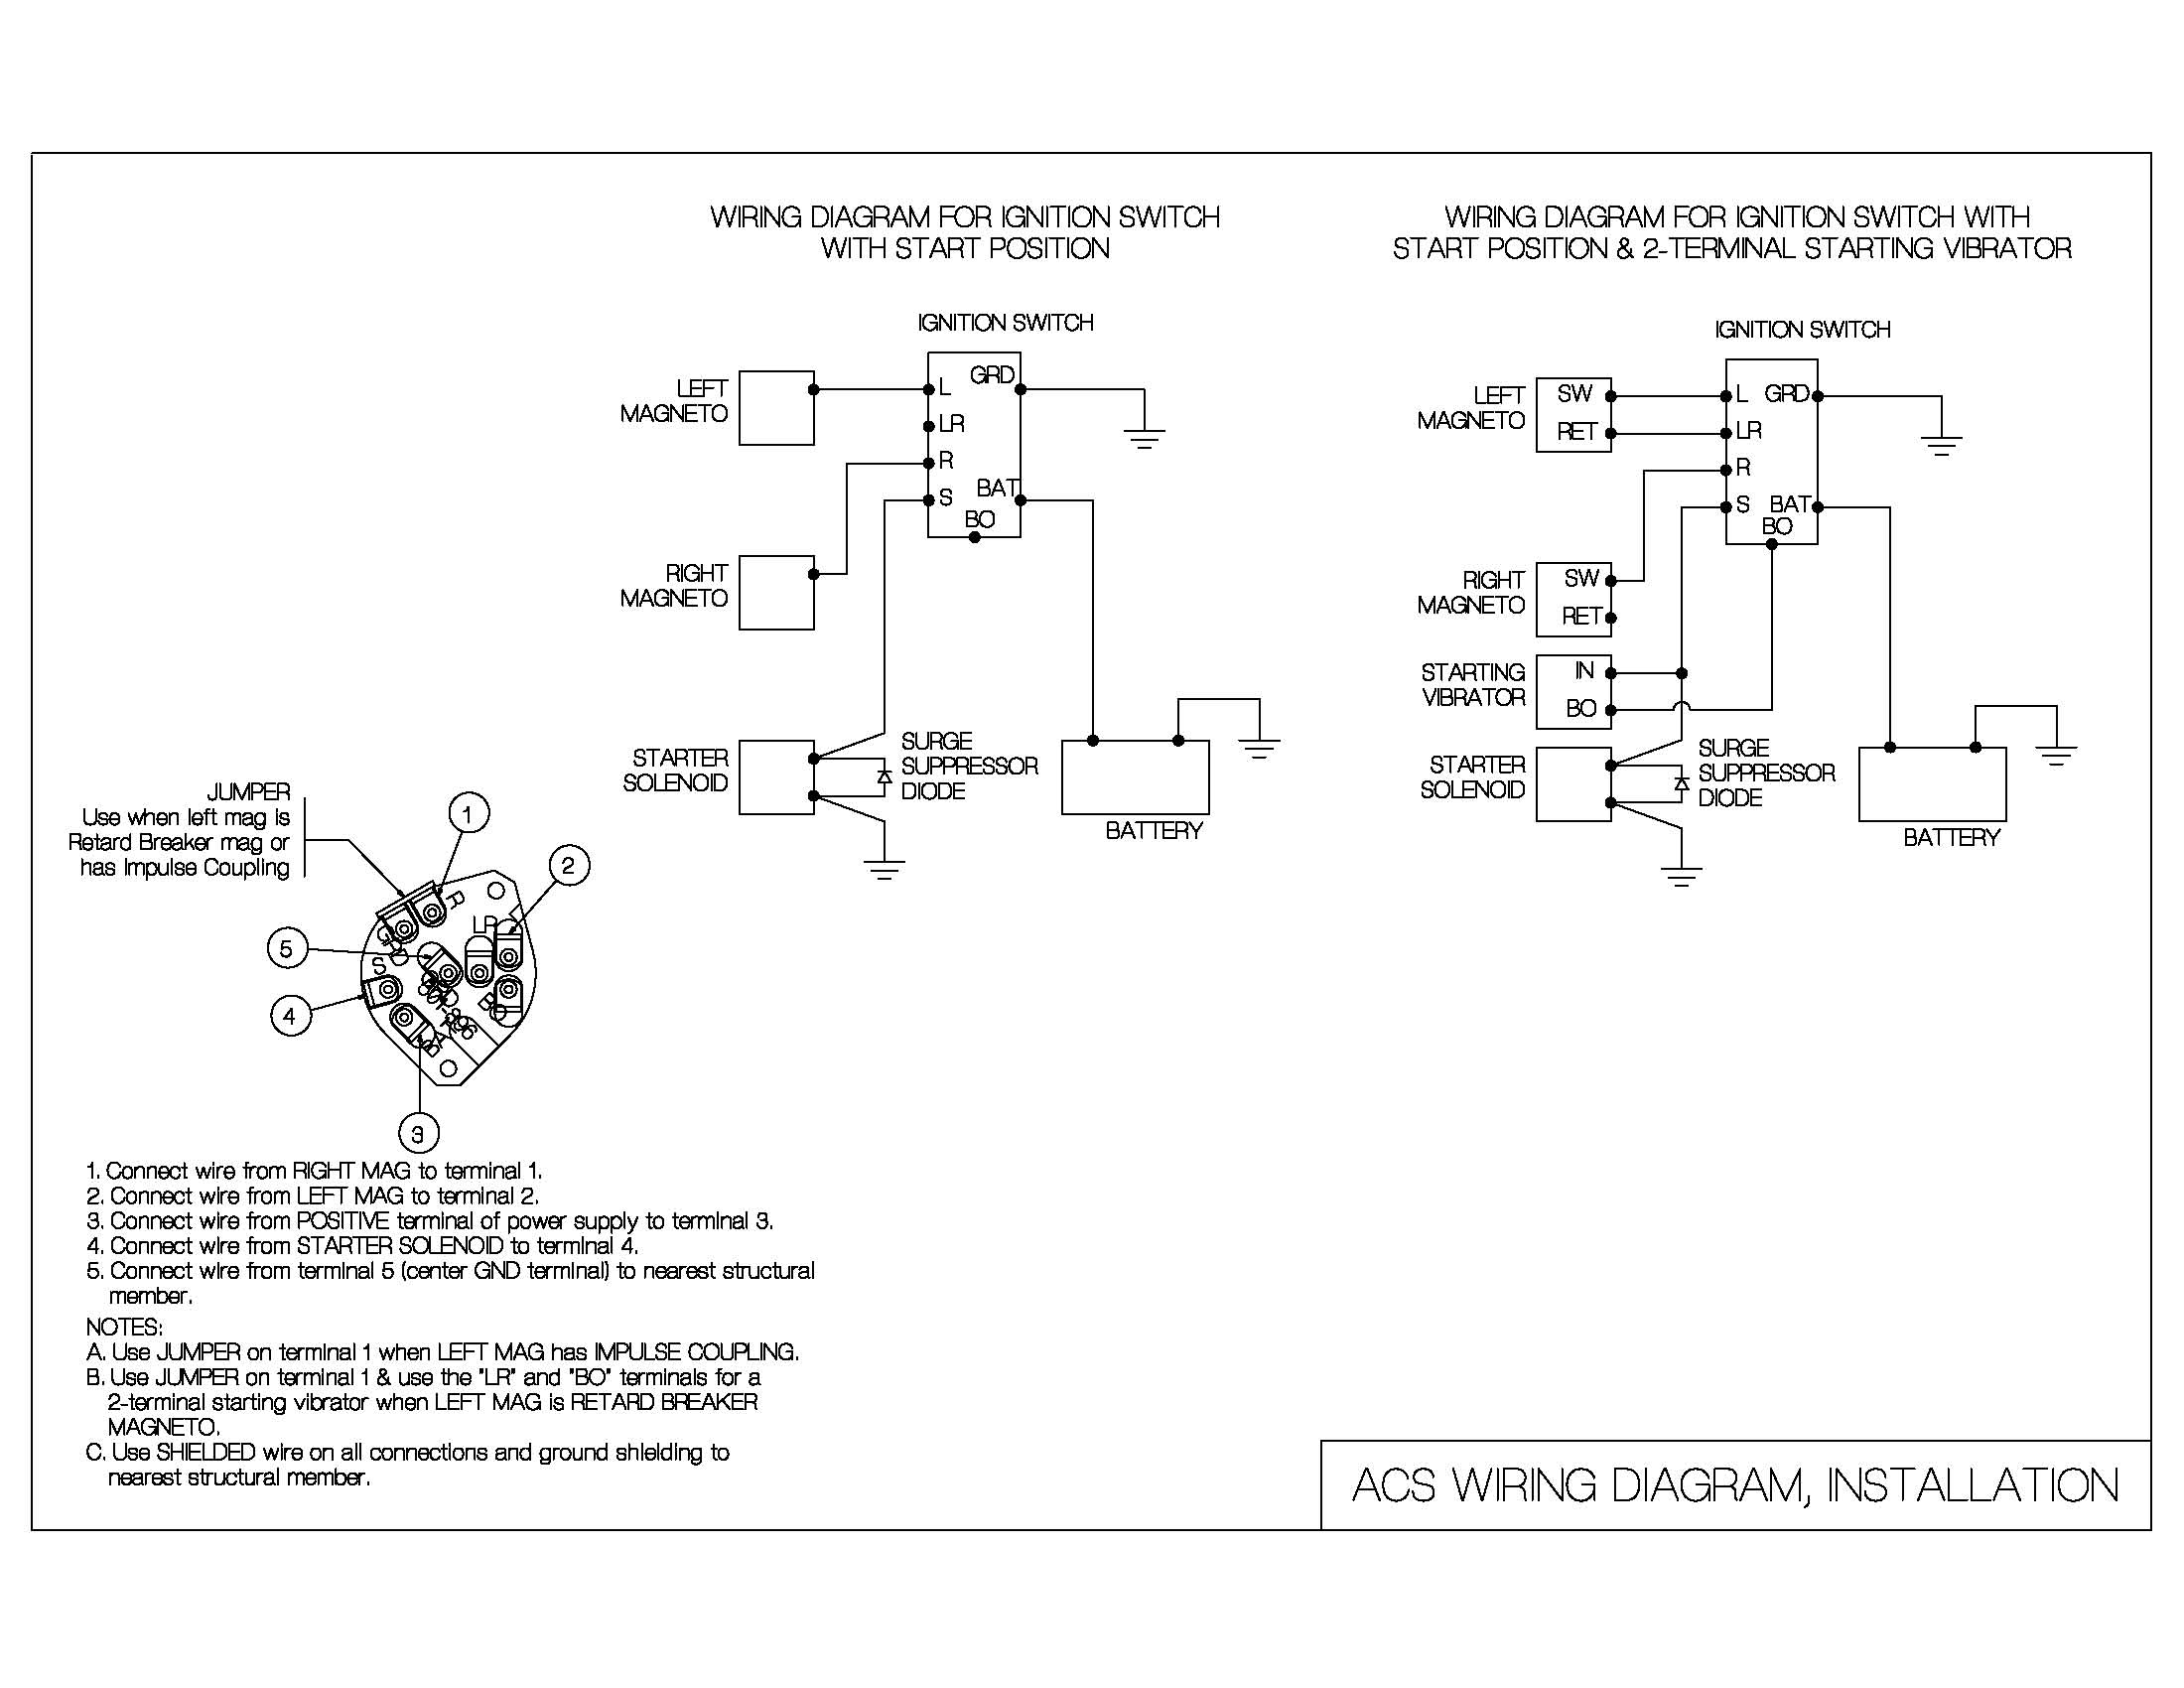 Wiring Diagram ignition switch wiring diagram acs products company terex hd1000 wiring diagram at couponss.co